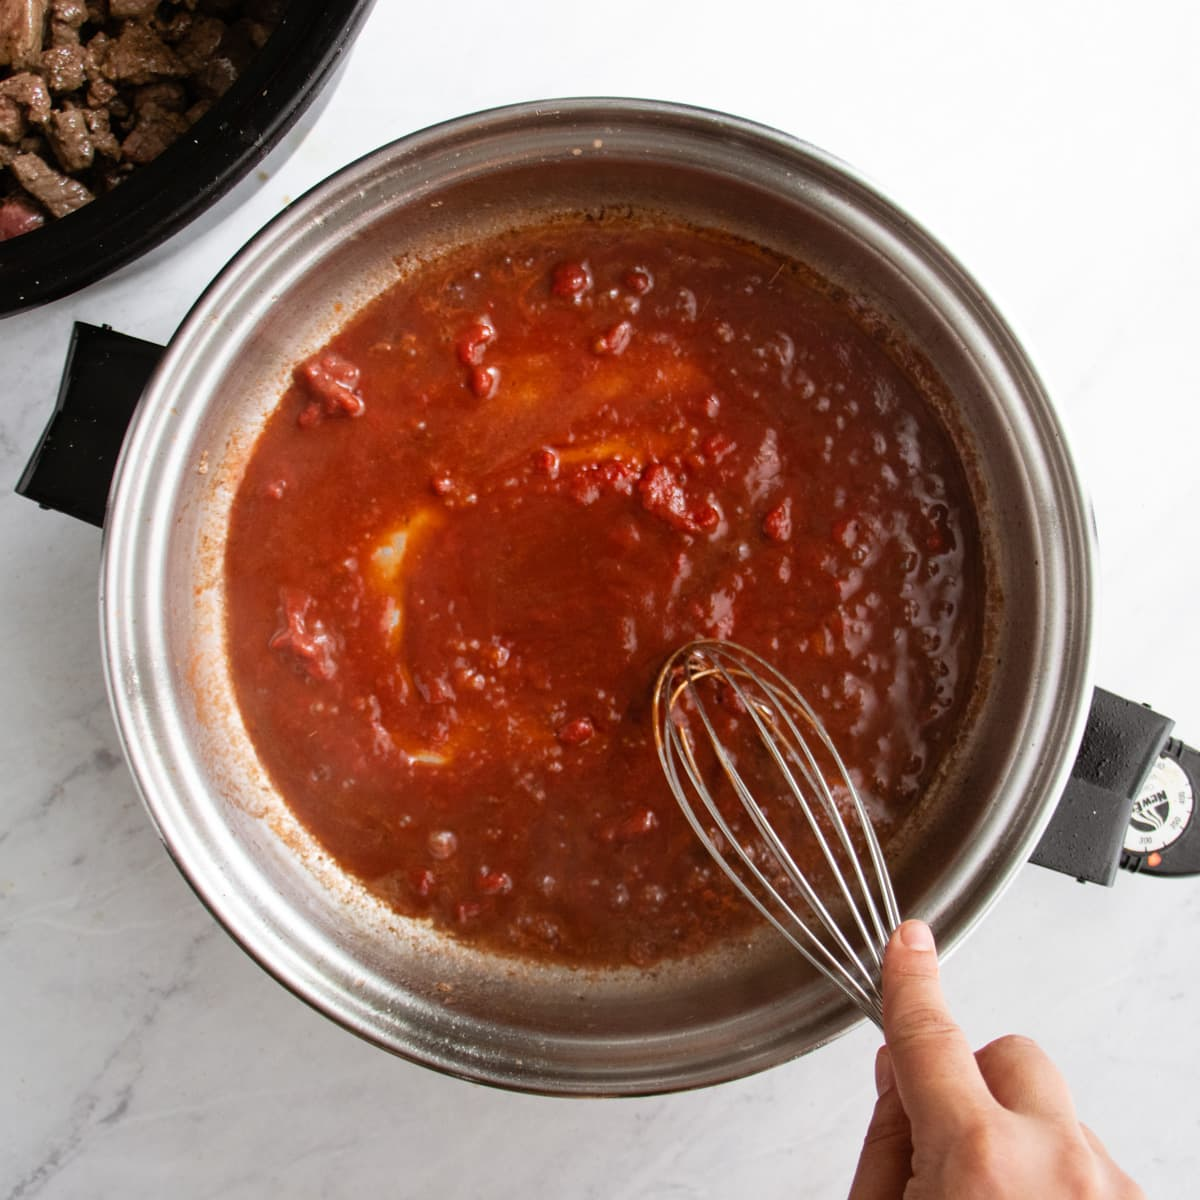 cooking down tomato paste and red wine in a skillet